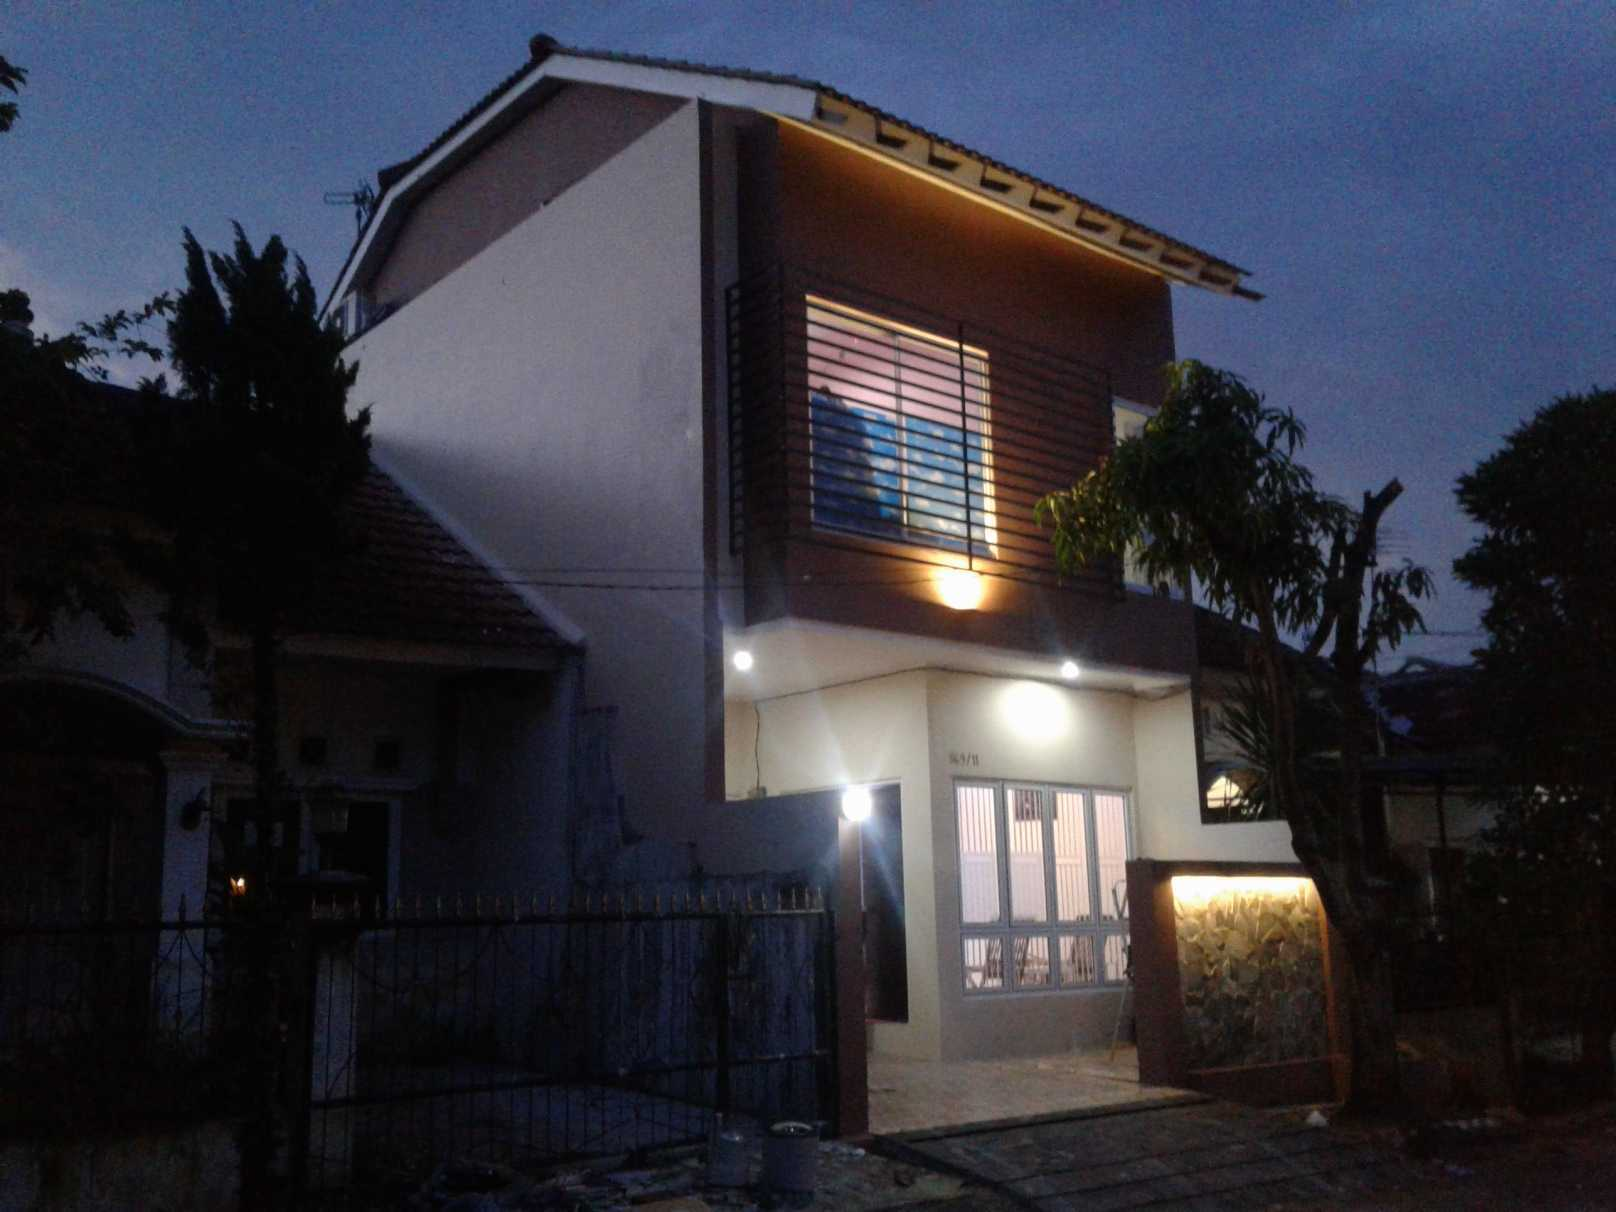 Mki Ds House Bogor Bogor Facade At Night Modern  23015